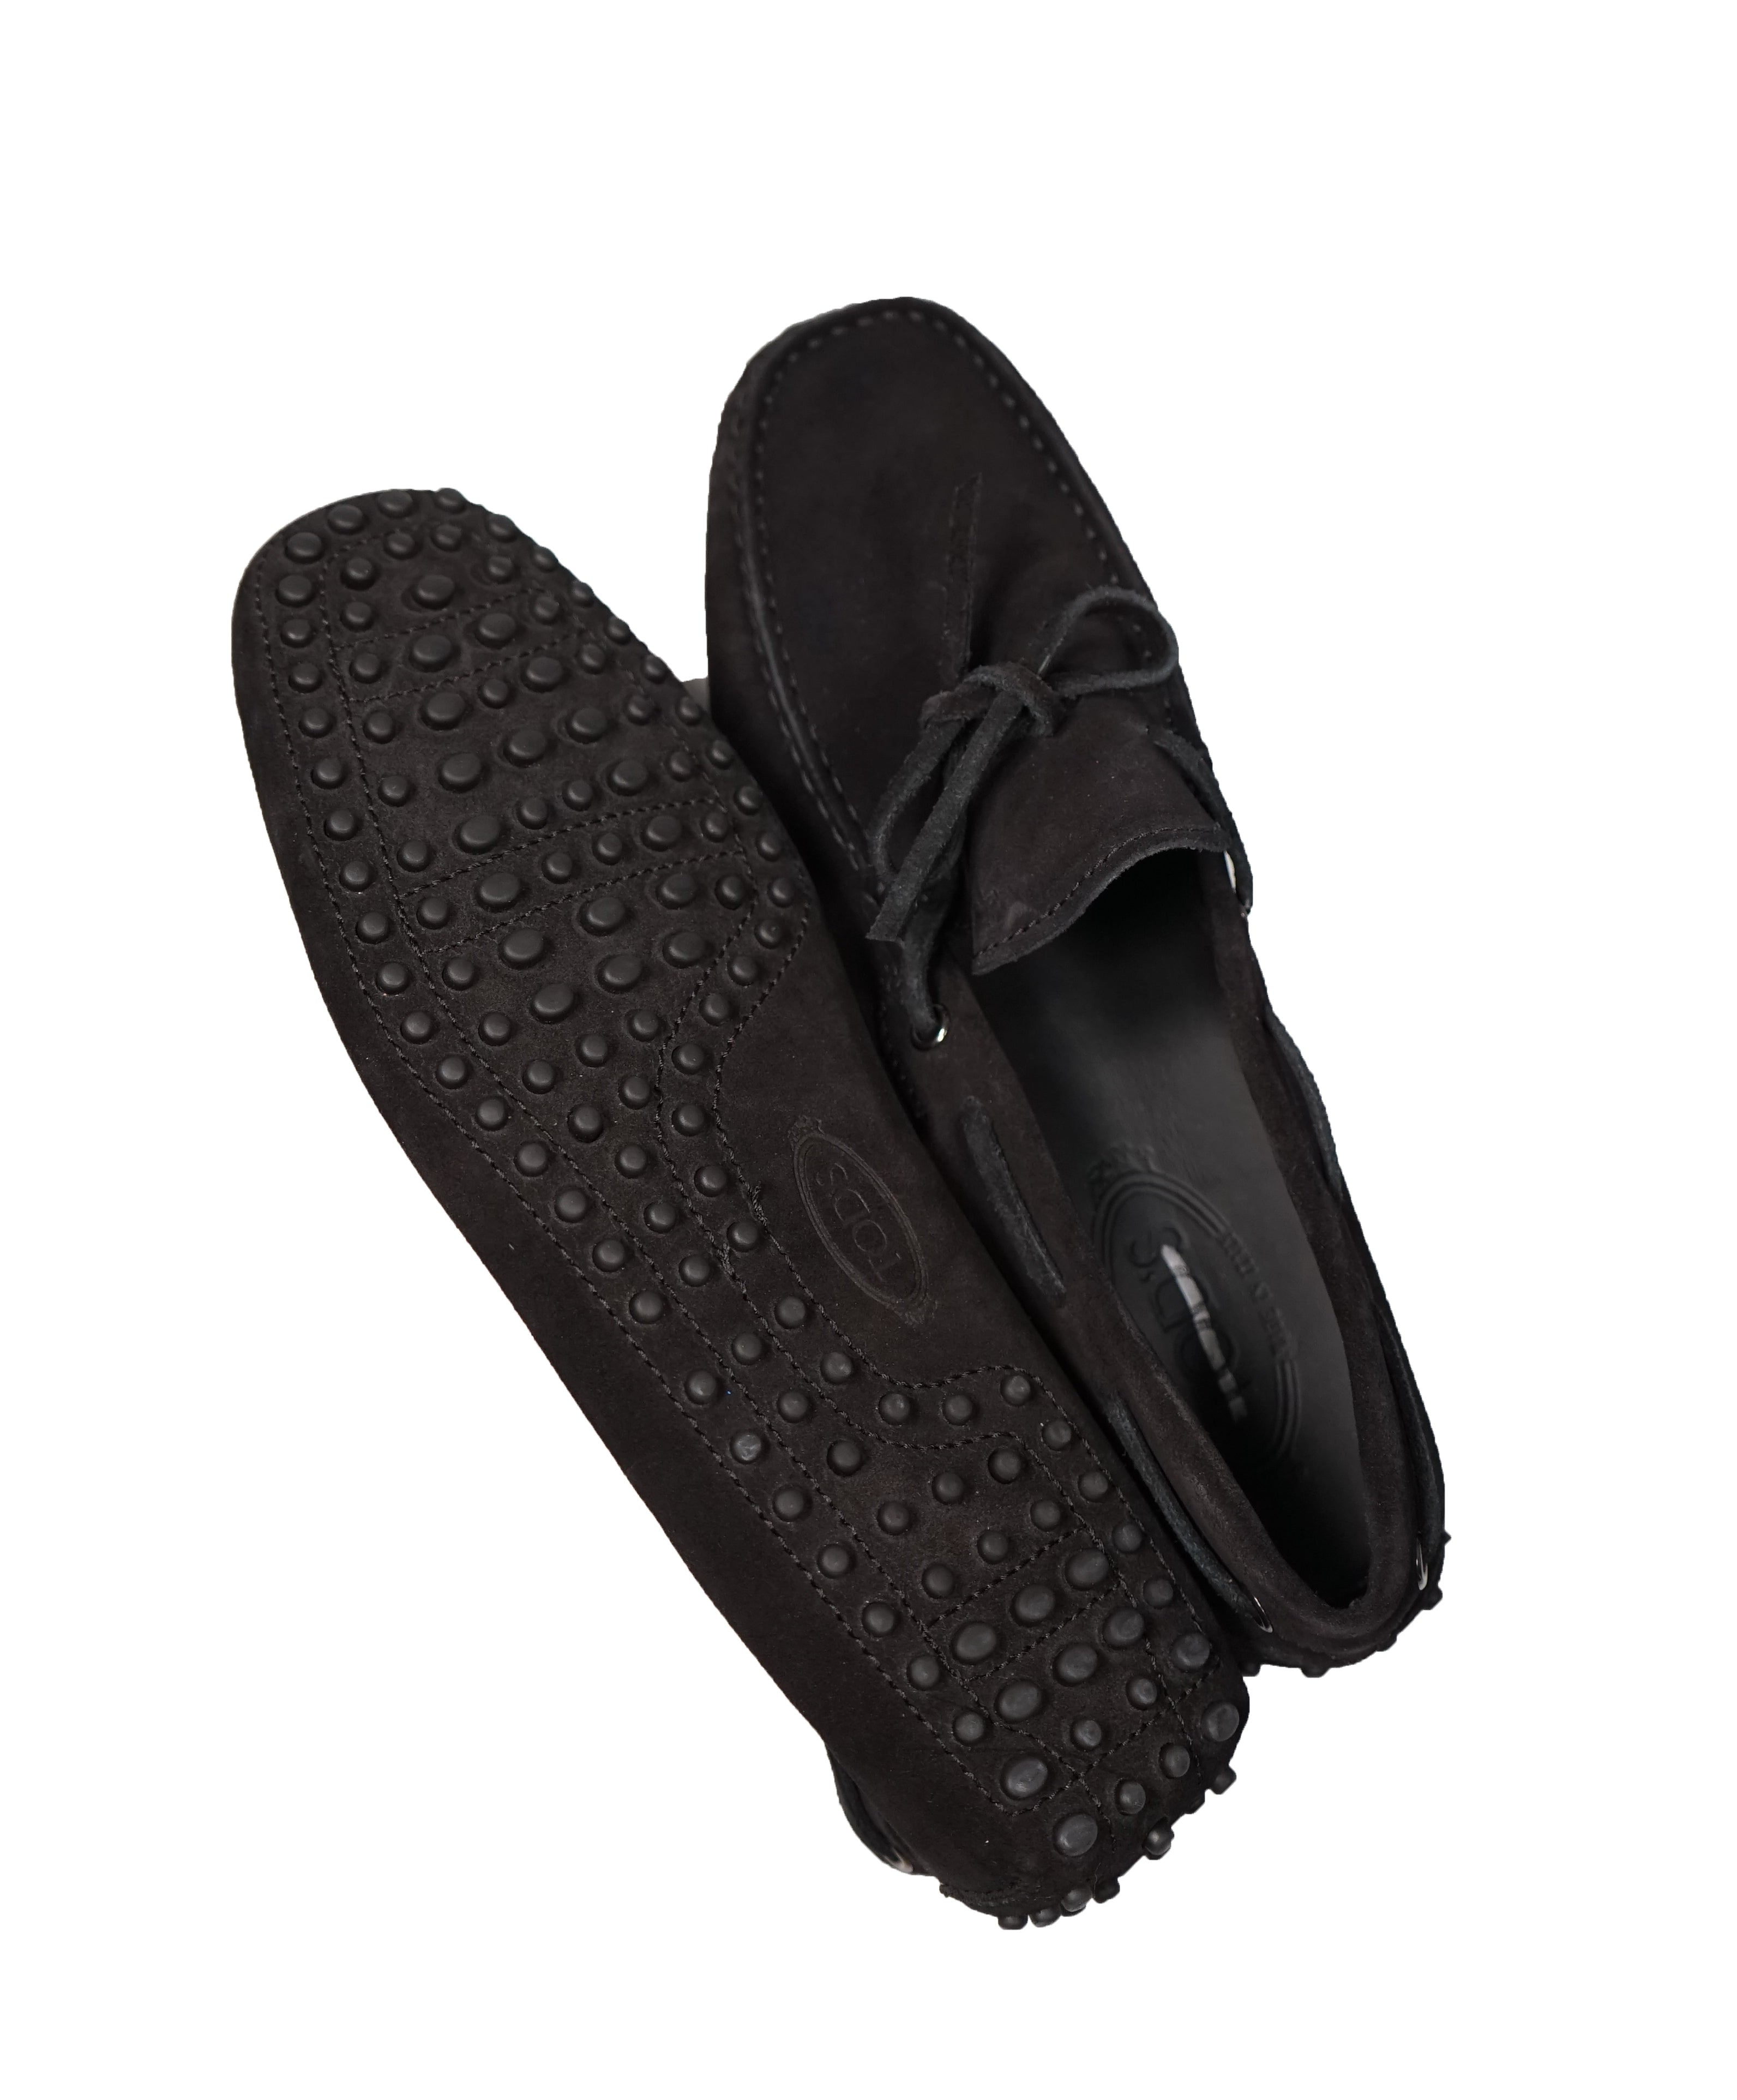 TOD'S - Black Laccetto Driving Loafers Knot Front - 8US